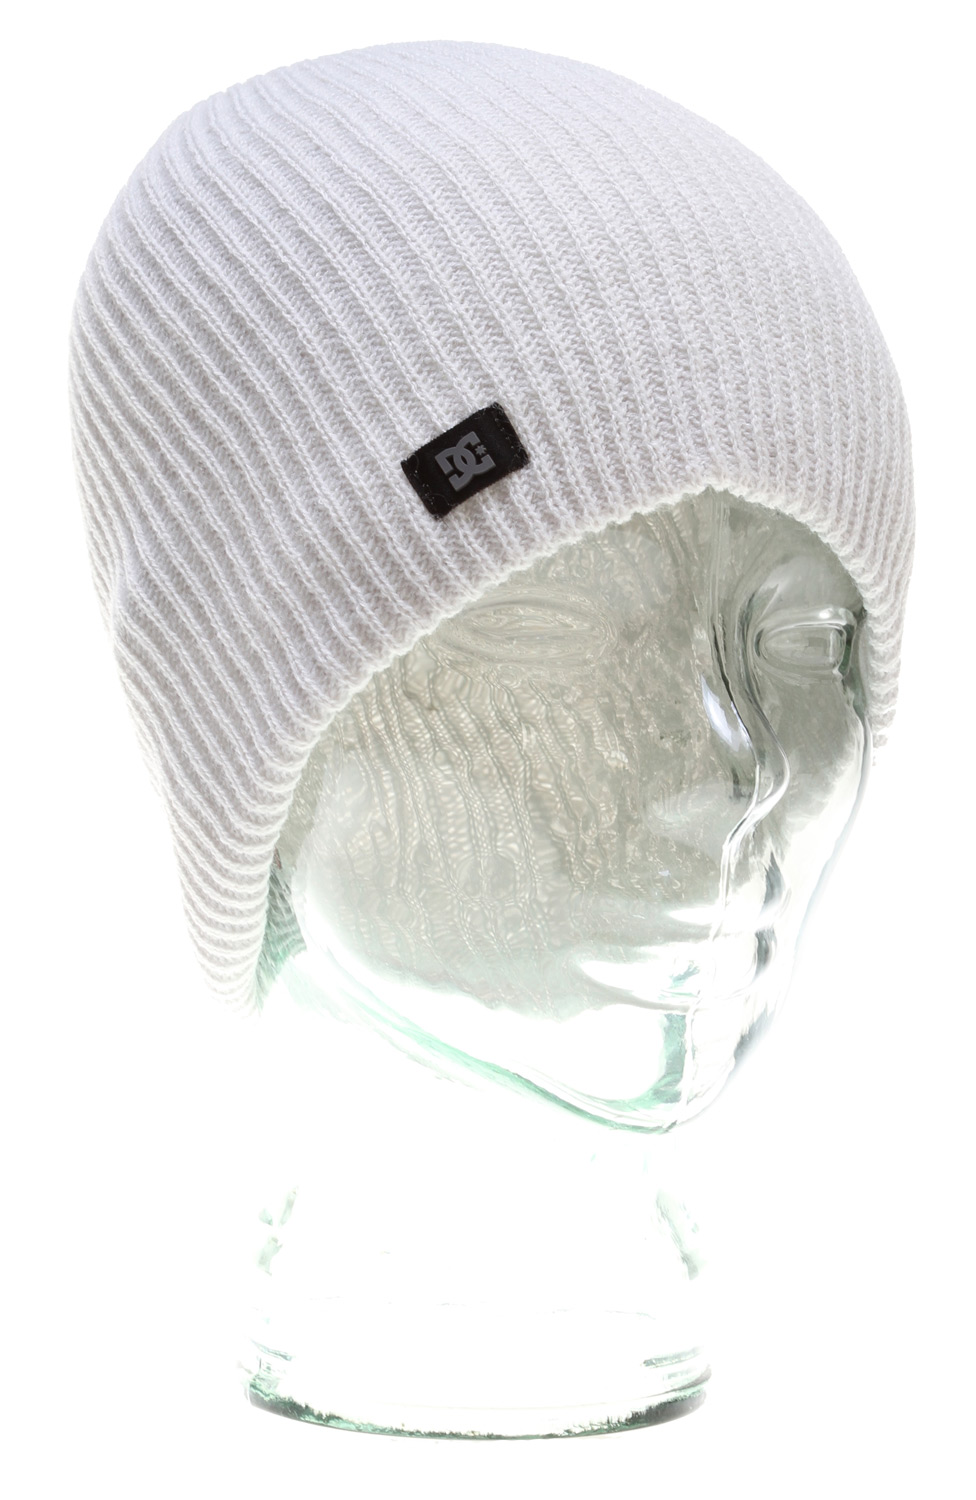 Standard fit beanie. 100% acrylicKey Features of the DC Yepito Beanie: Standard fit beanie 100% acrylic - $9.95